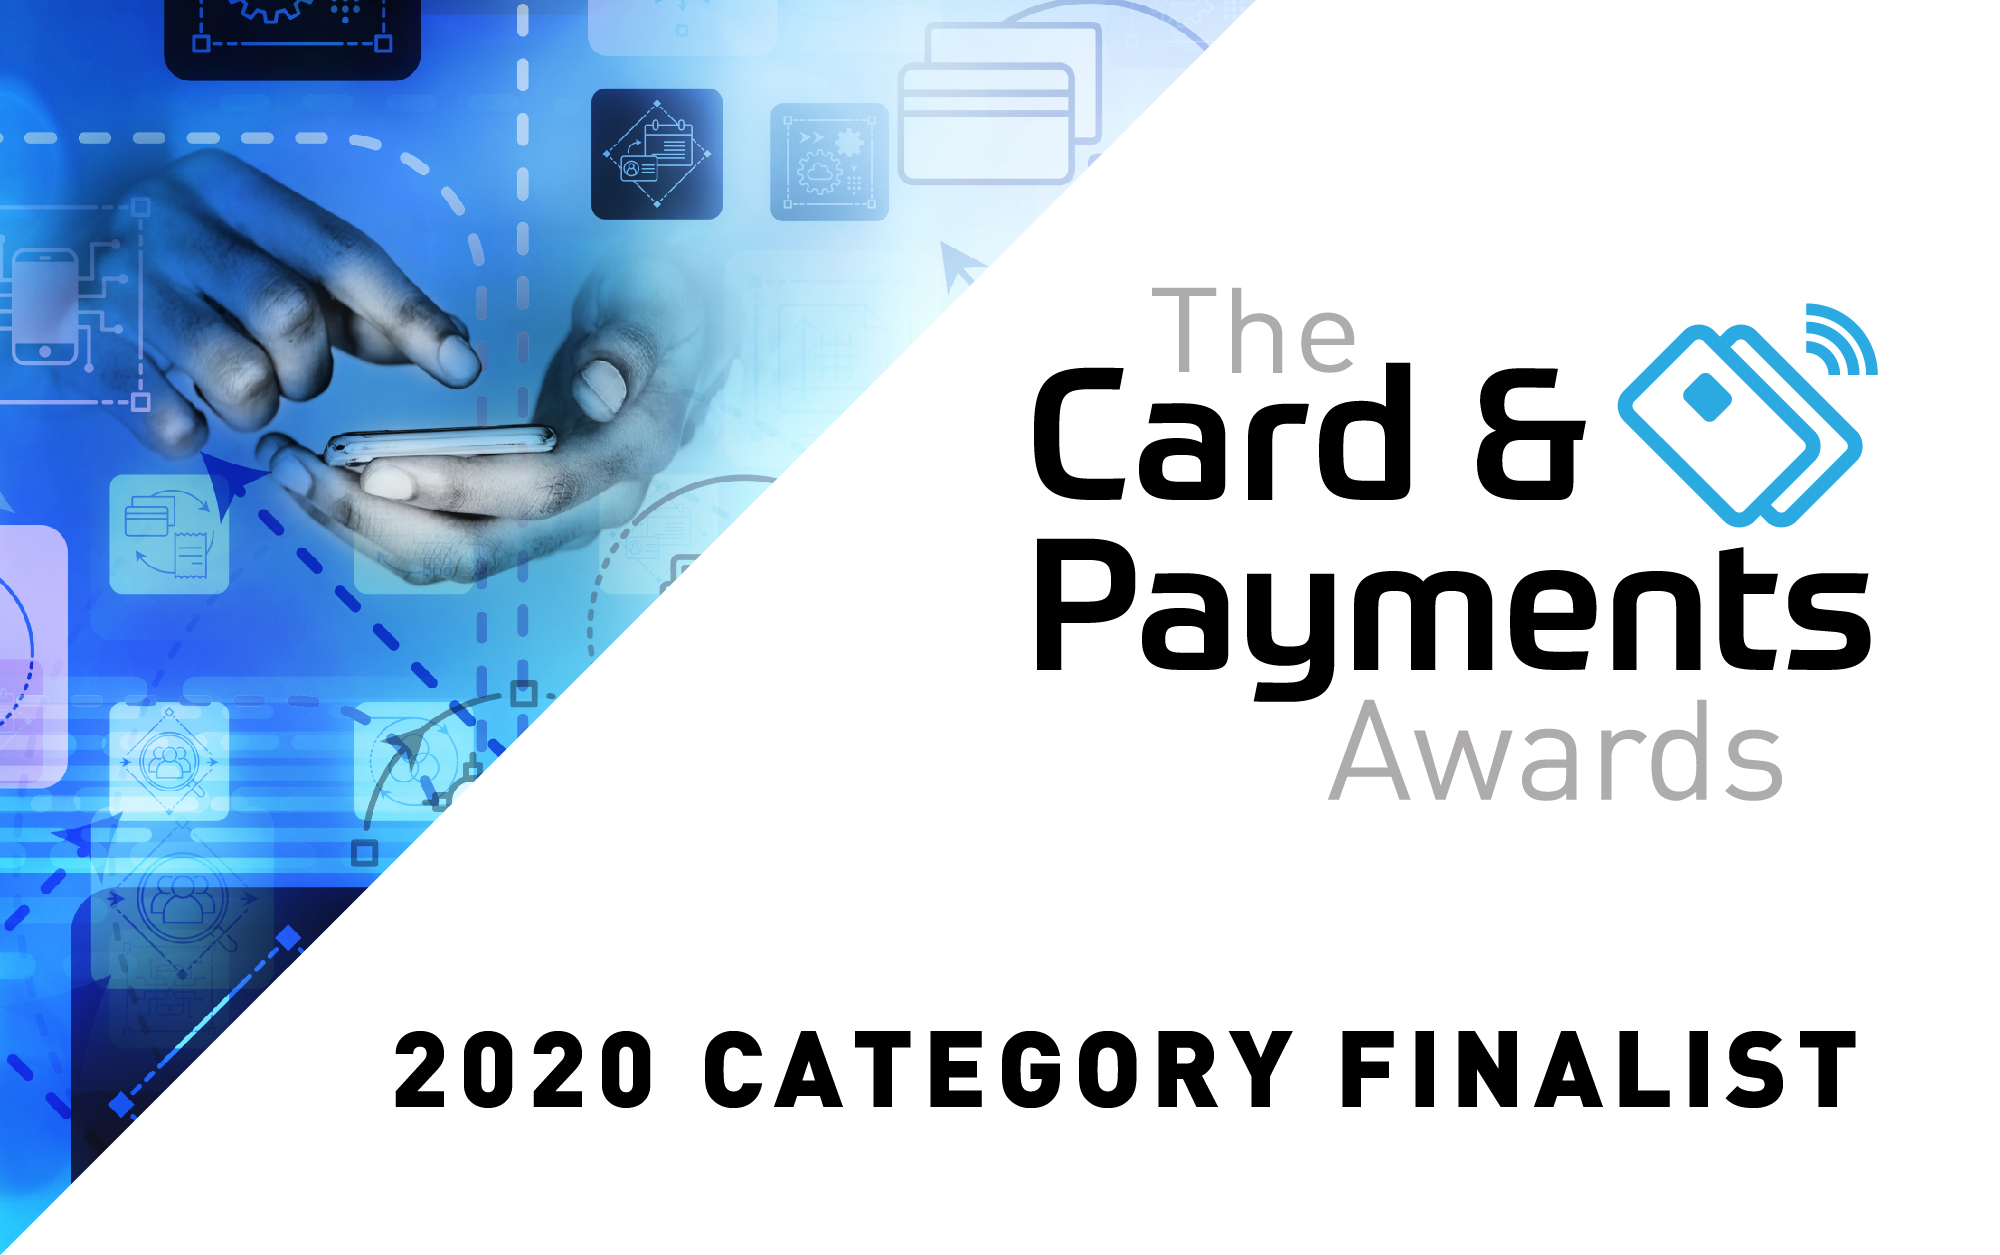 Centtrip prepaid Mastercard shortlisted for The Card & Payments Awards 2020